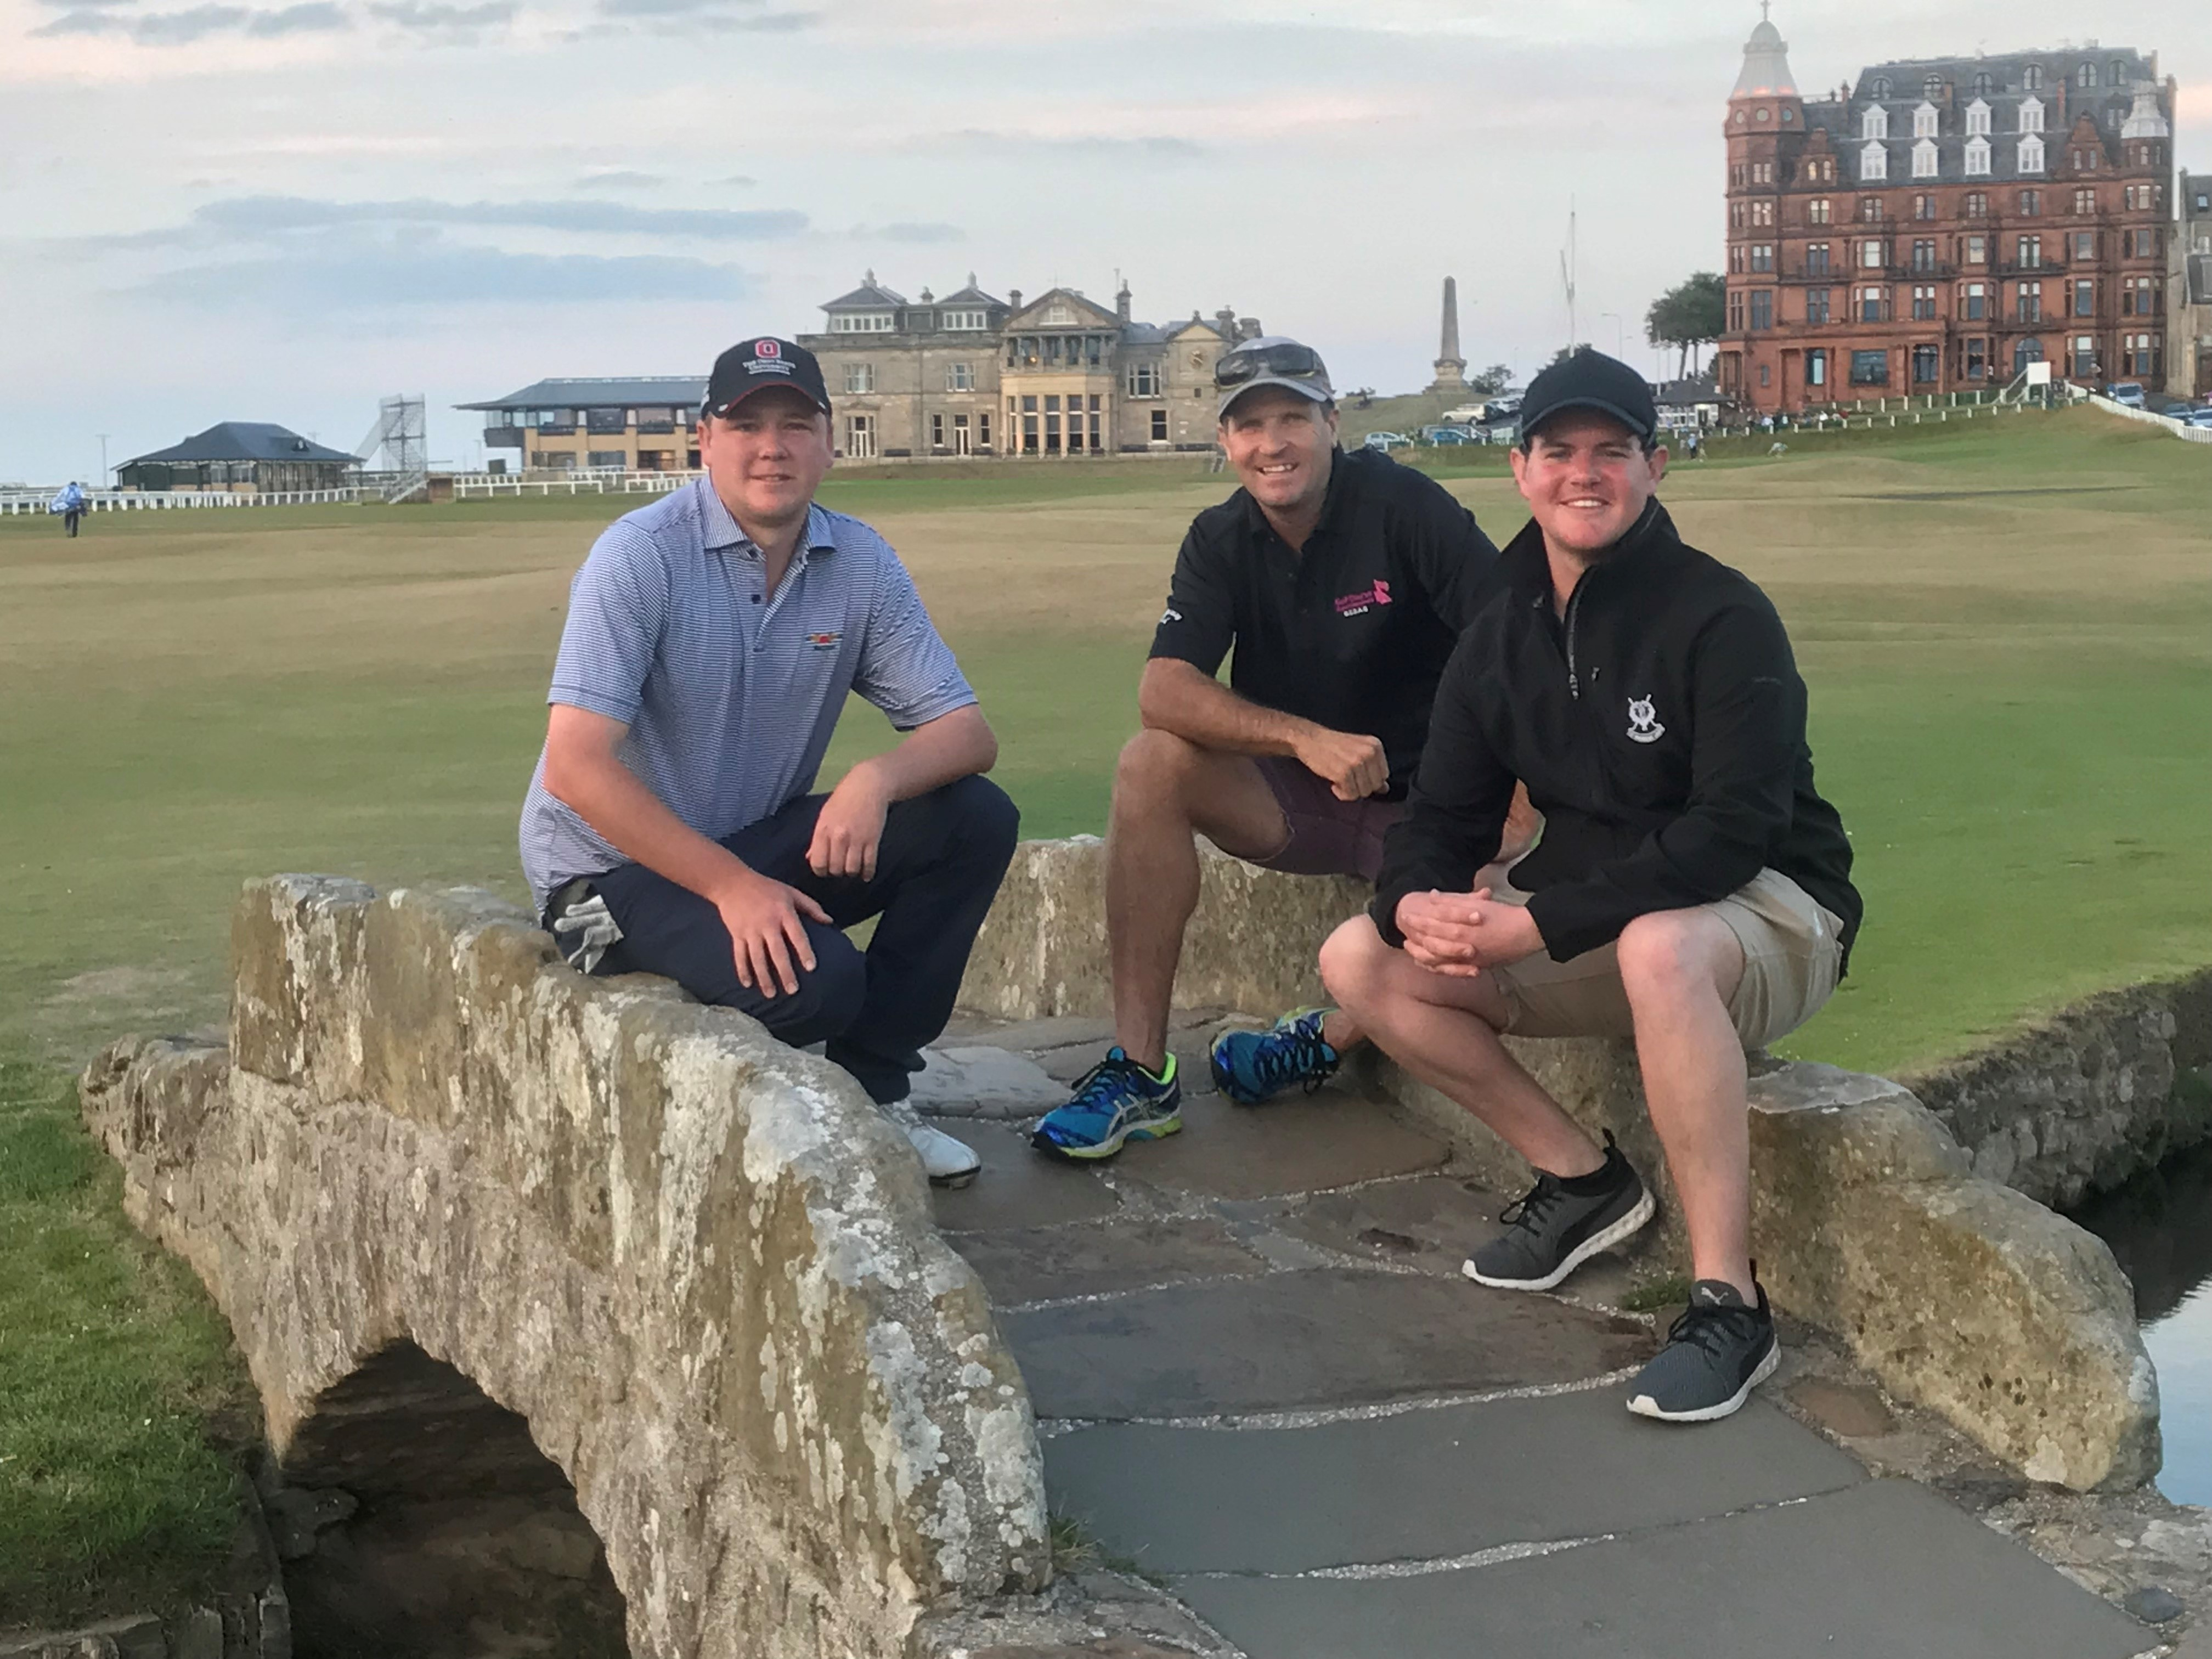 Trip of a lifetime for 3 Australian Assistant Superintendents to St Andrews Links in Scotland